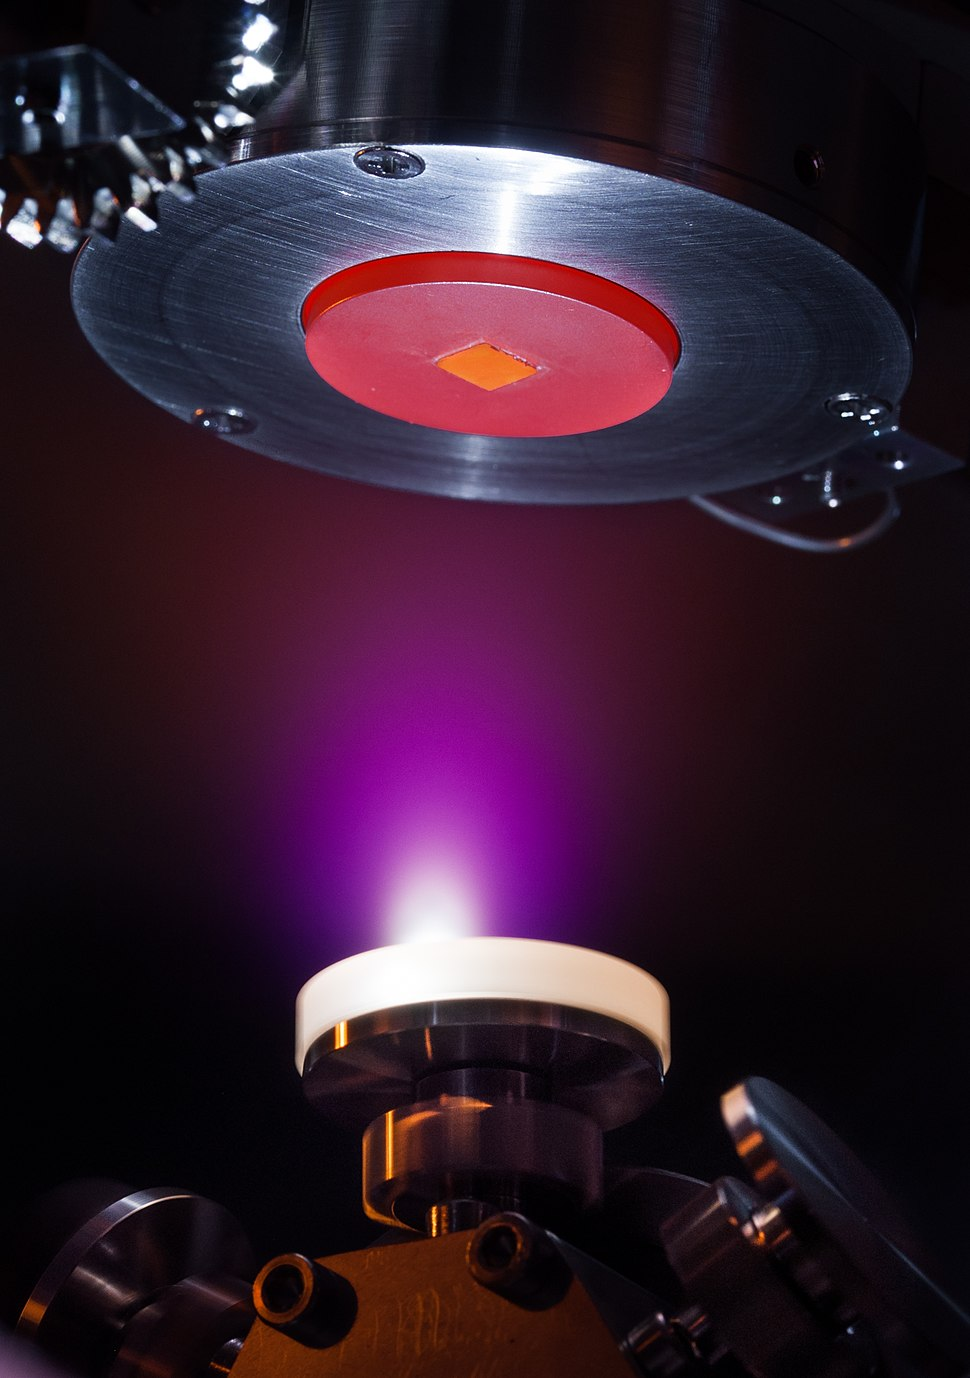 Pulsed Laser Deposition in Action